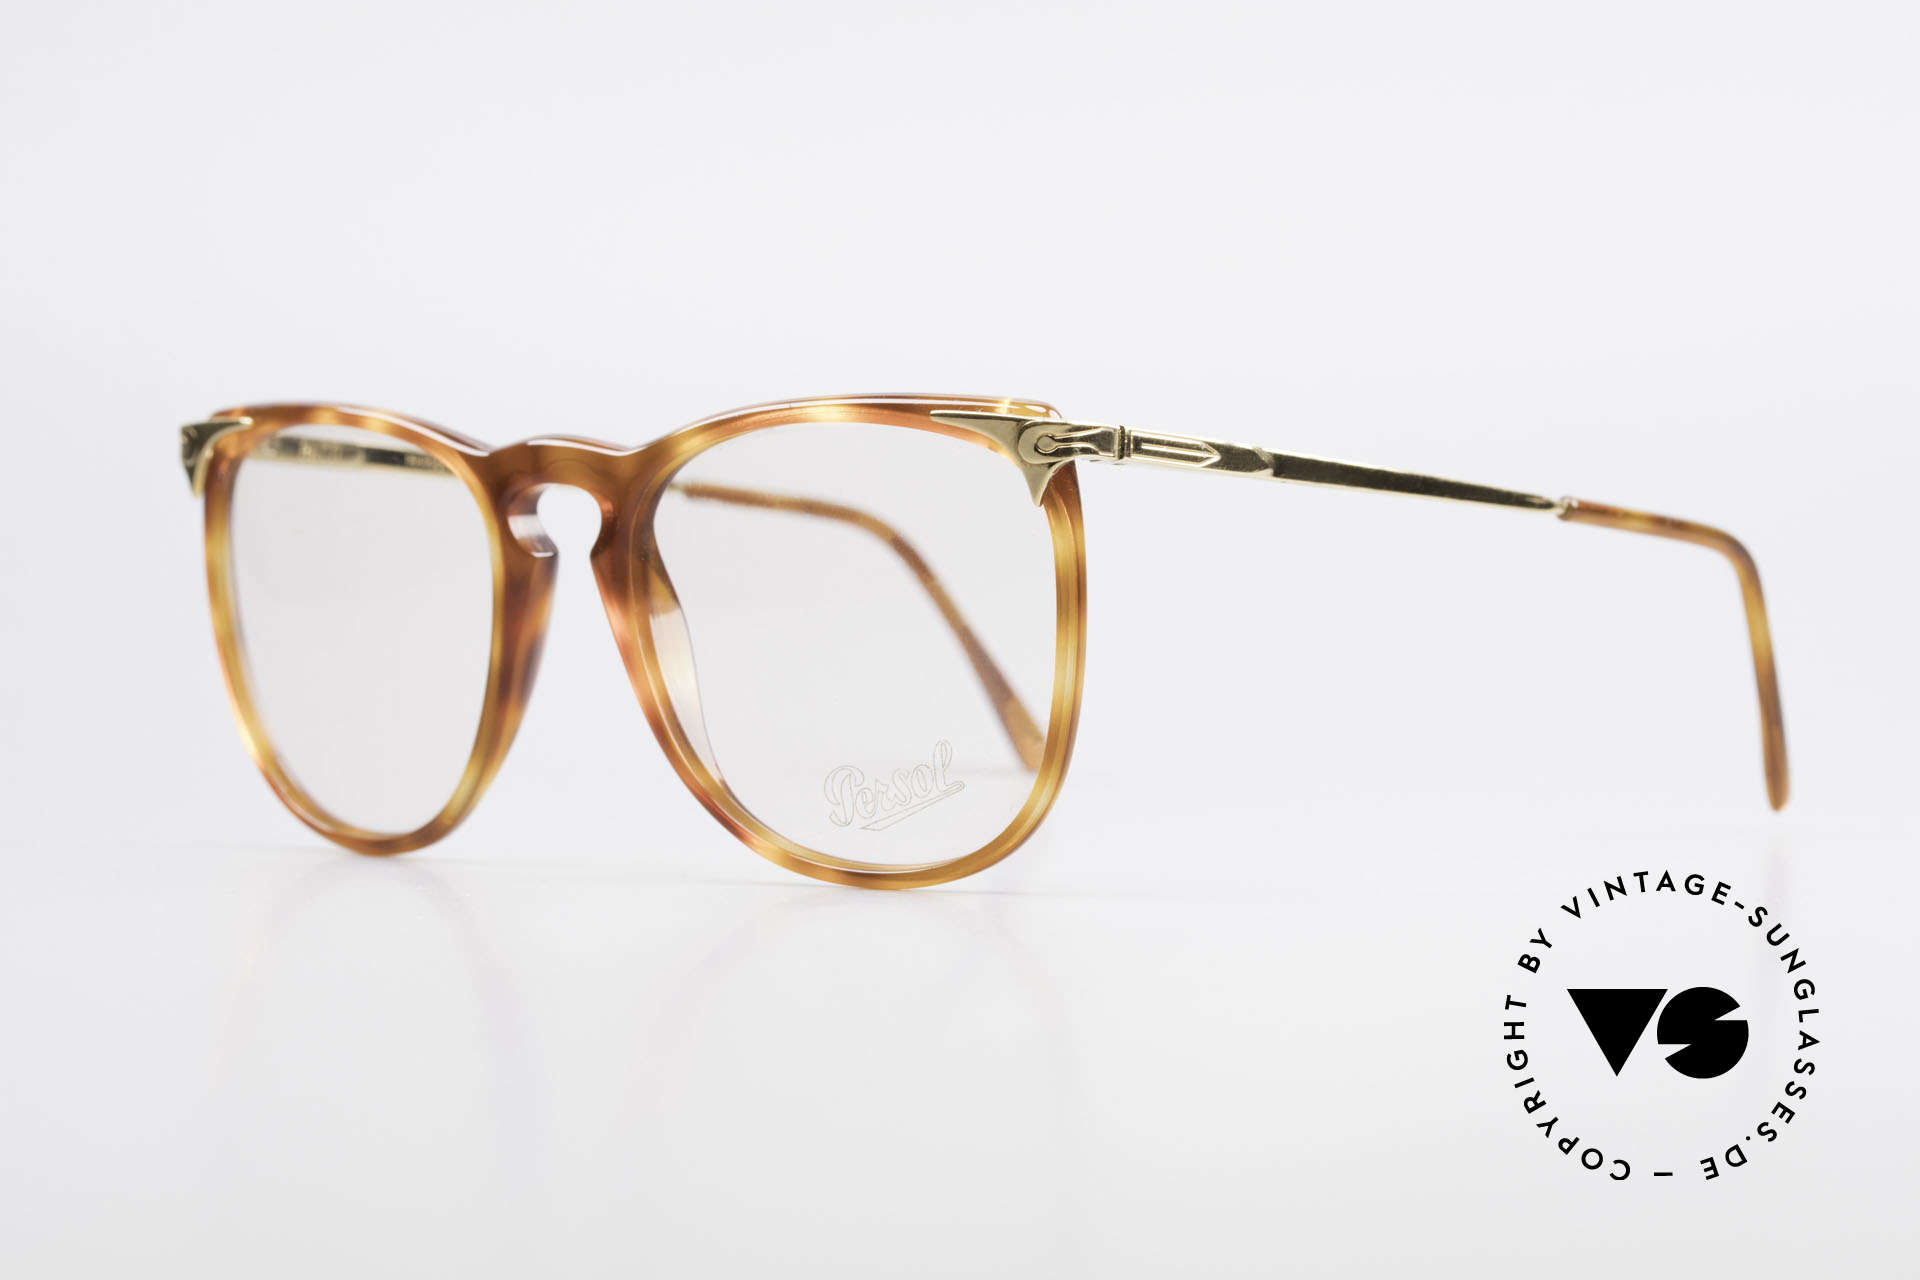 Persol Cellor 3 Ratti Old Vintage Eyeglasses 80's, very rare model; GOLD-PLATED metal parts, Made for Men and Women